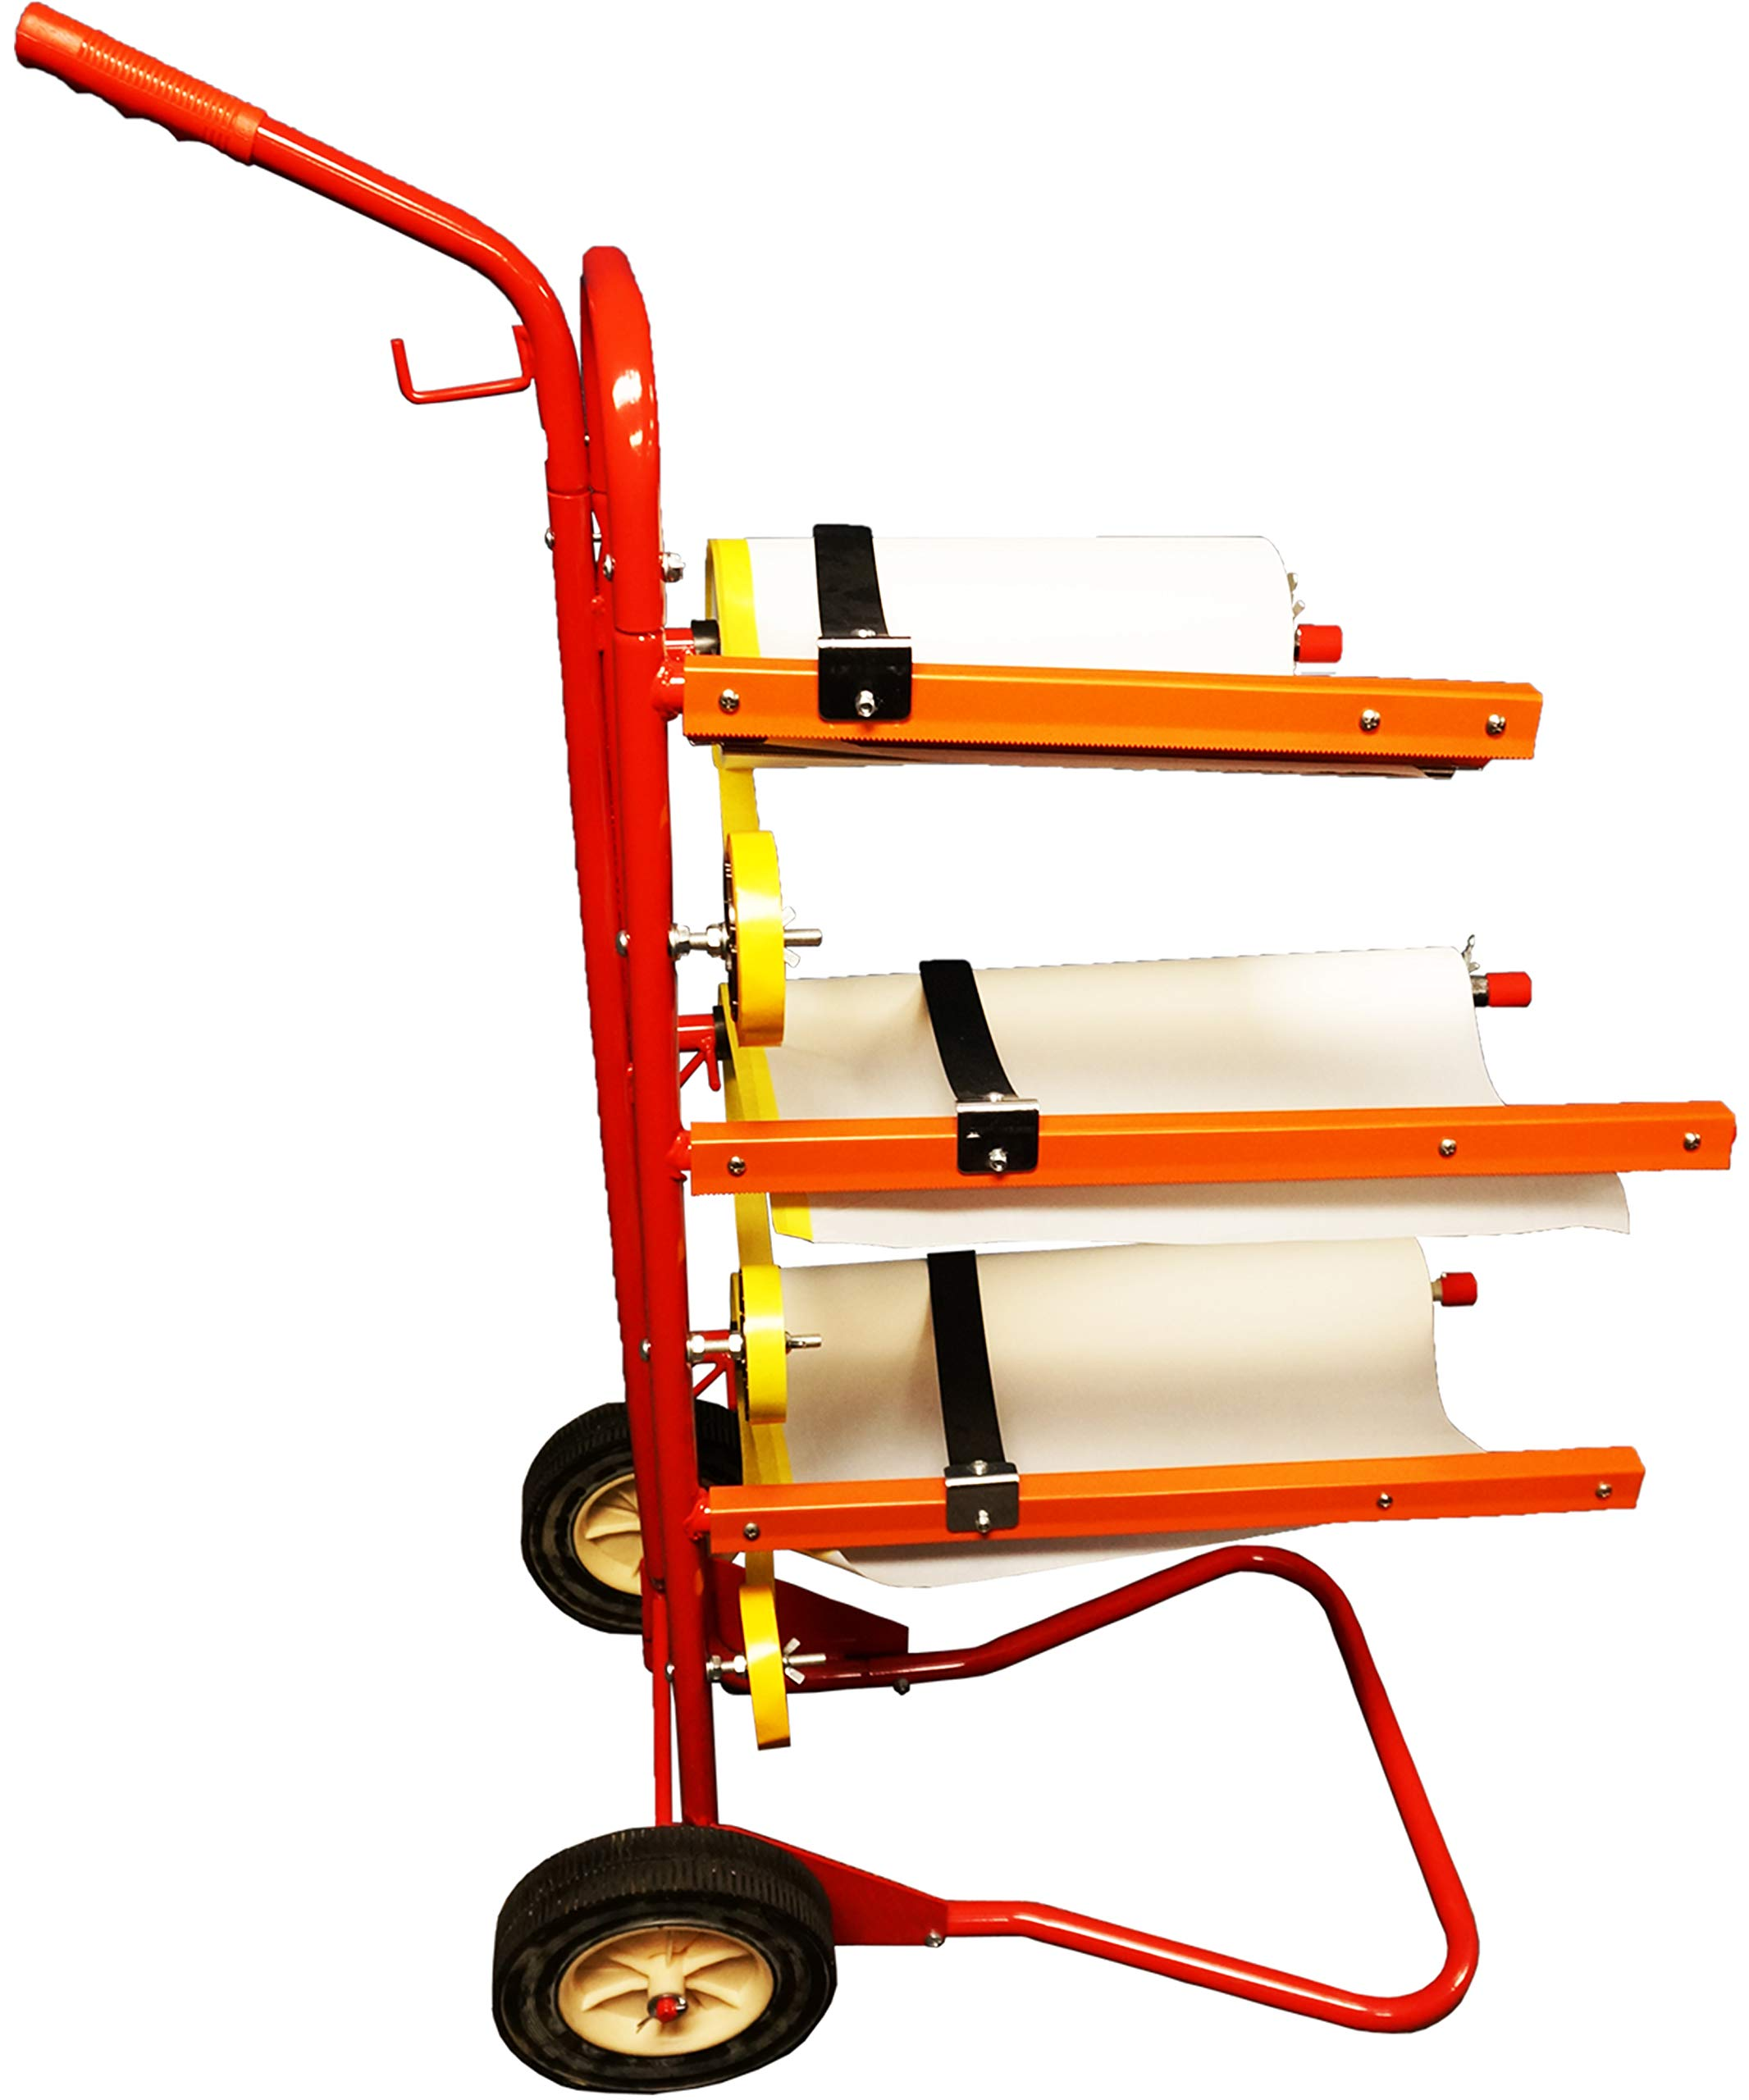 Reli. Mobile Masking Station, 3-Tier Multi-Roll, Heavy-Duty Steel, Easy Pull - Masking Tree, System for Masking Film or Masking Paper by Reli. (Image #1)